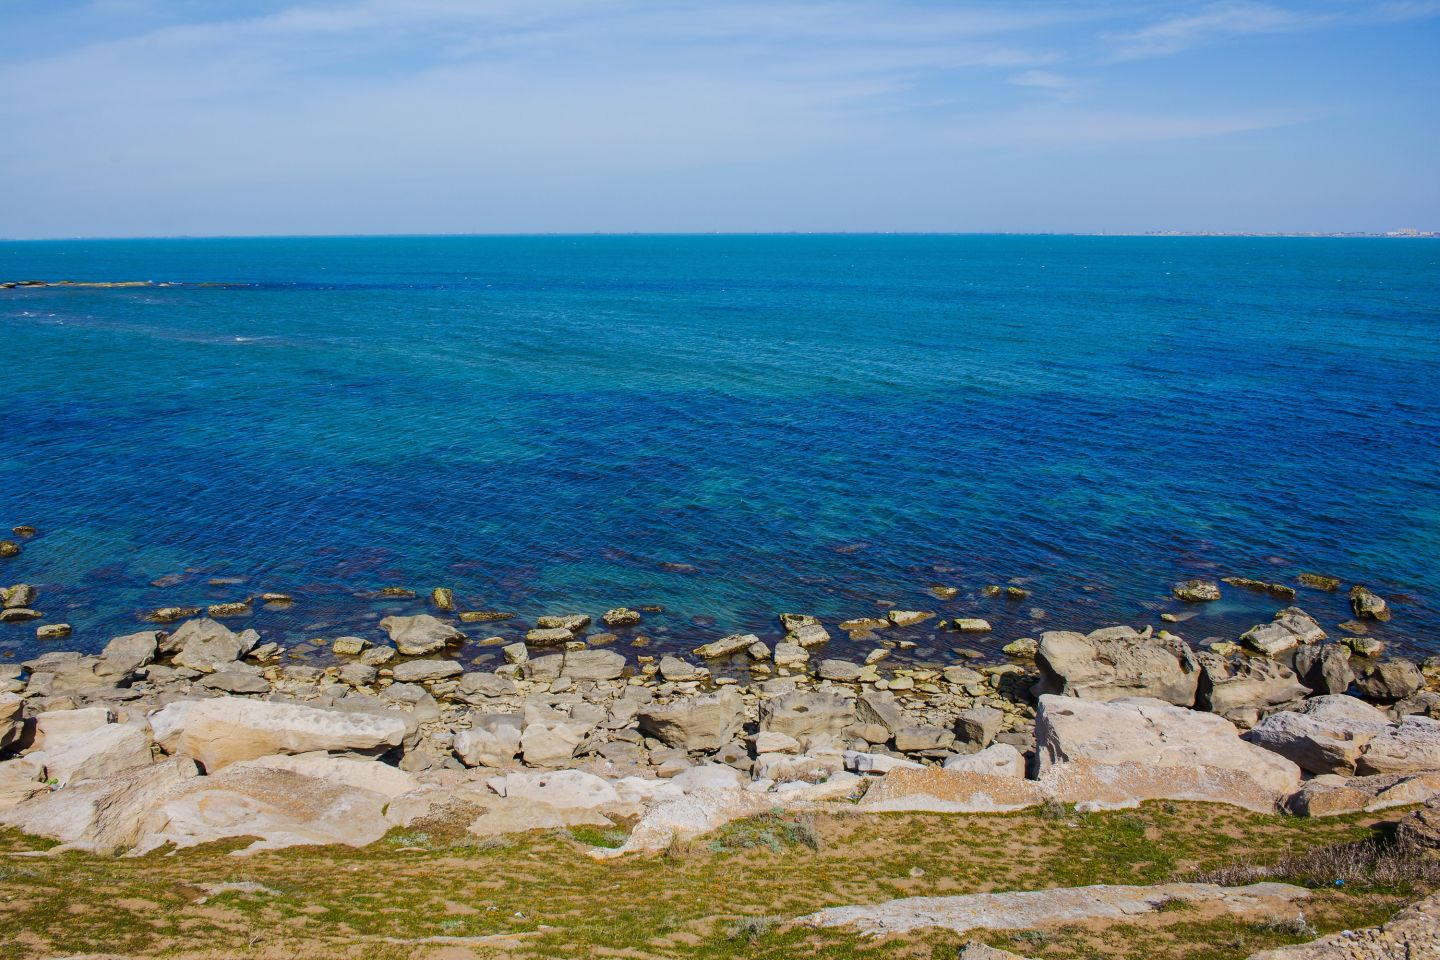 Caspian sea facts largest lake in the world dk find out for Fish whose eggs are used for caviar